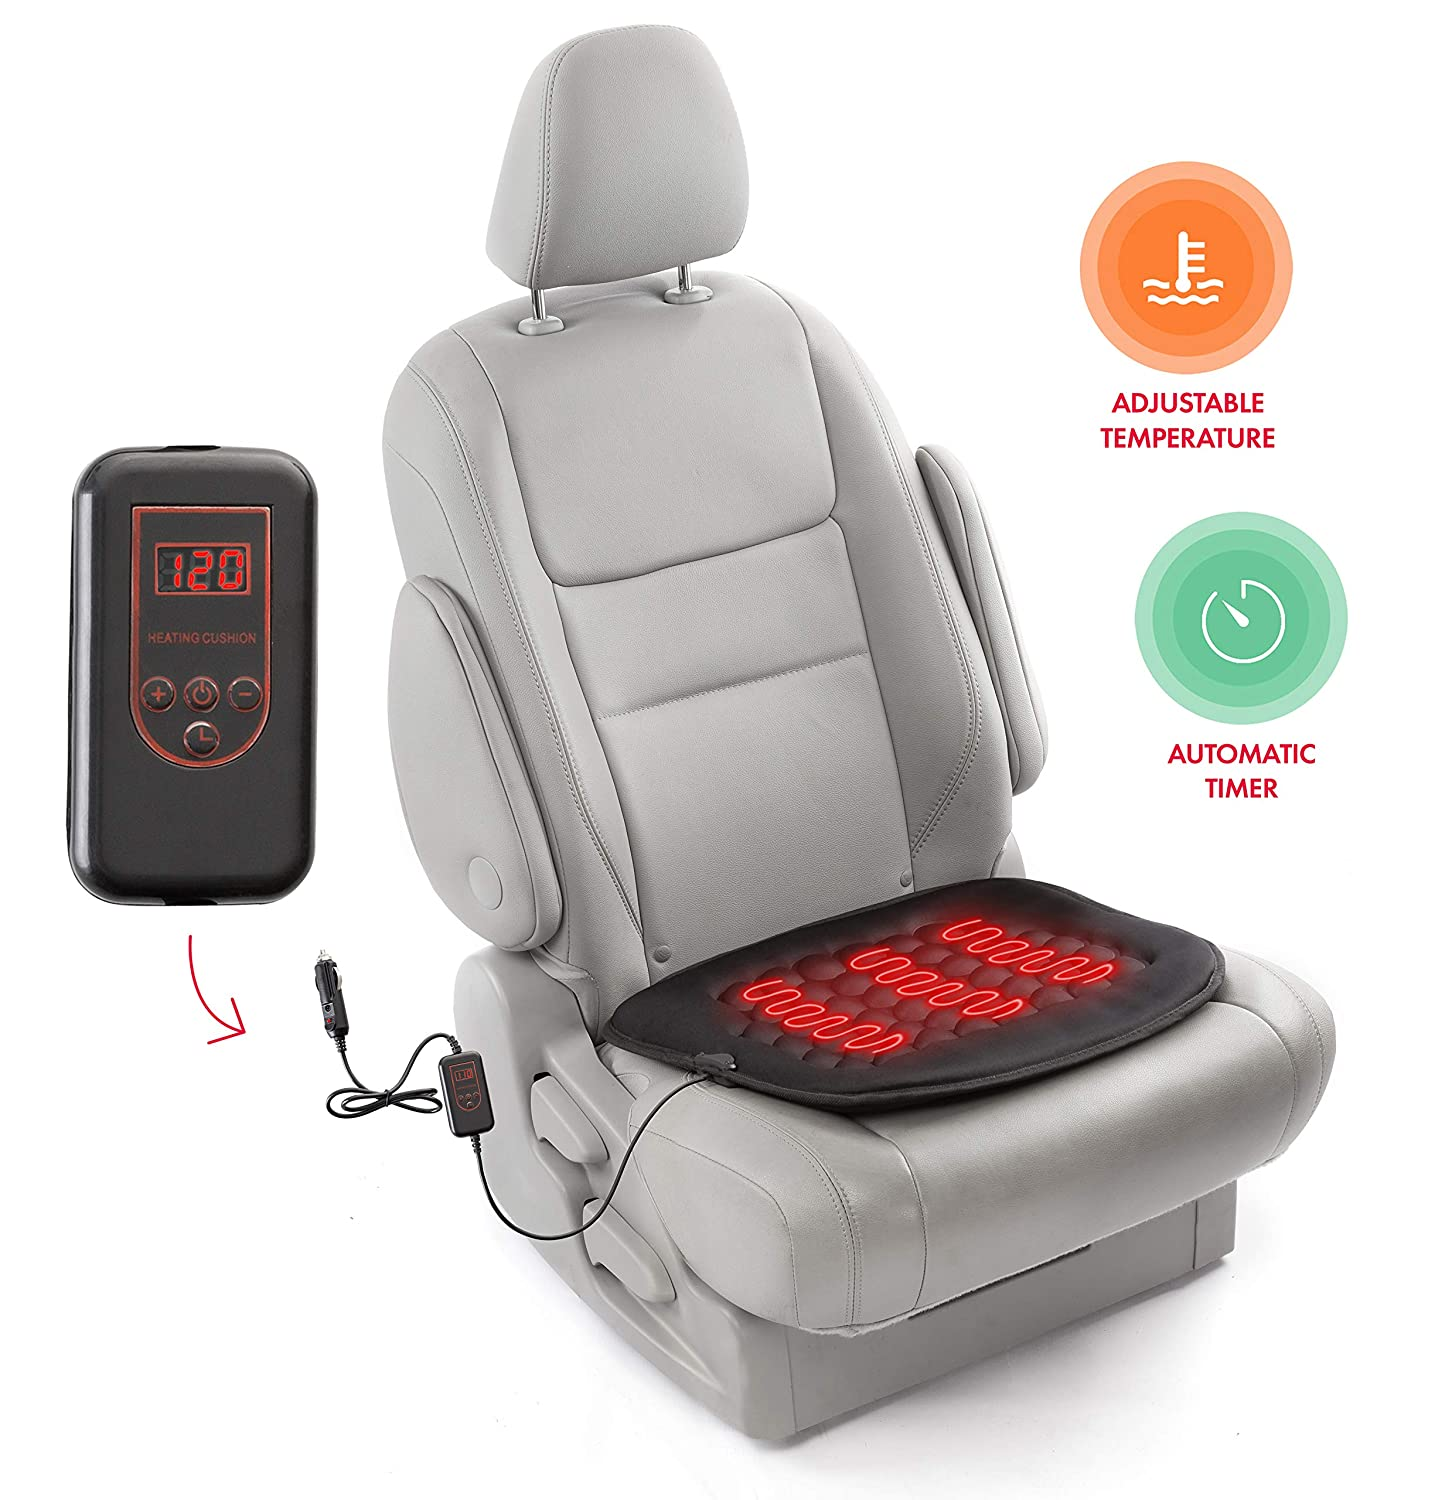 Zento Deals Car Heated Seat Cushion Hot Cover Auto 12V Heater Warmer Pad- New Upgraded Version for 2019, Safer Nonflammable UL Wiring